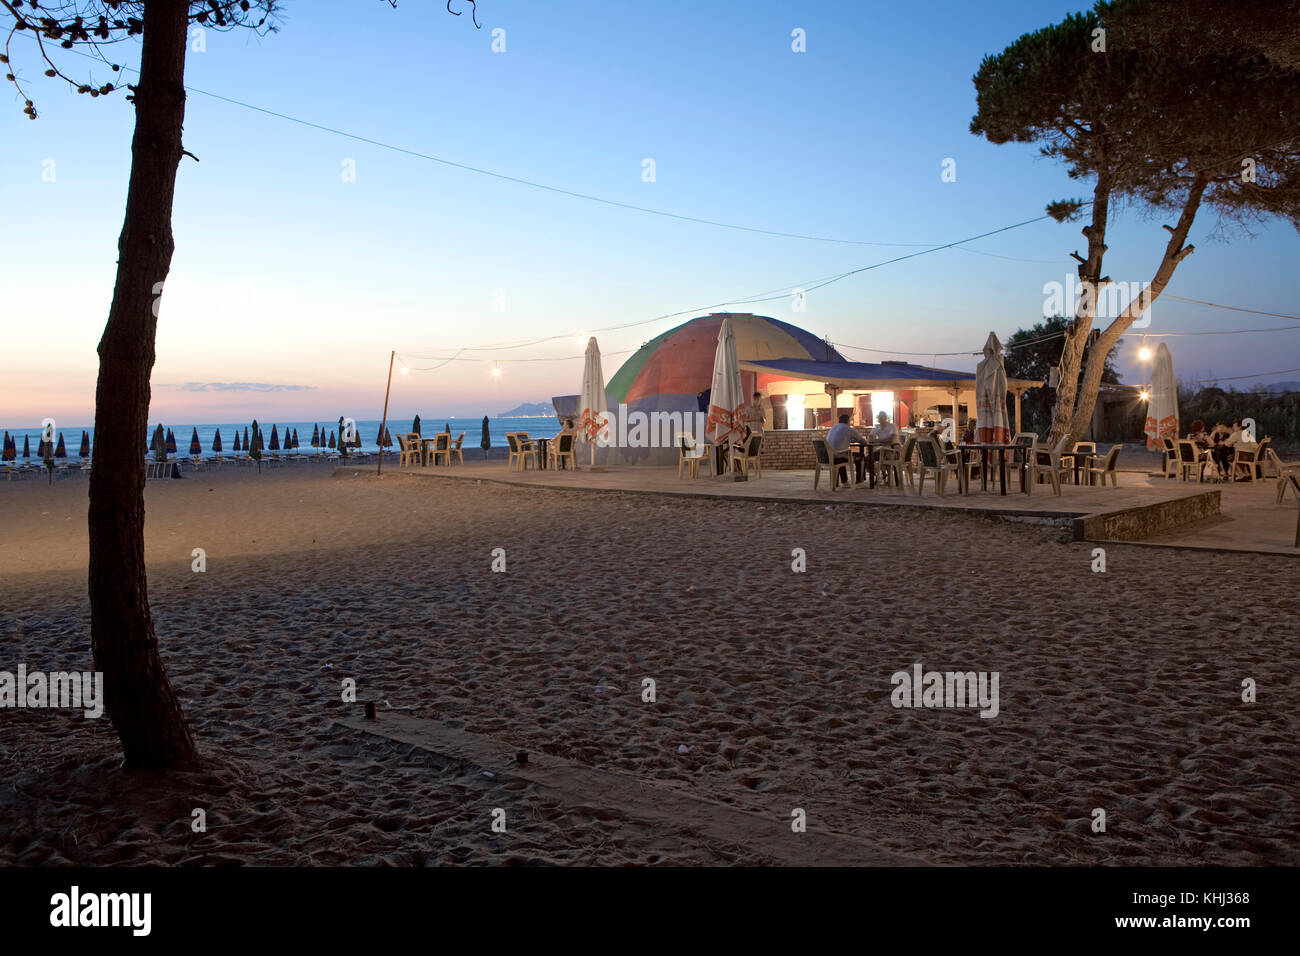 Converted Cold War bunker converted into a bar on the beach at Mali i Robit, Albanian. - Stock Image